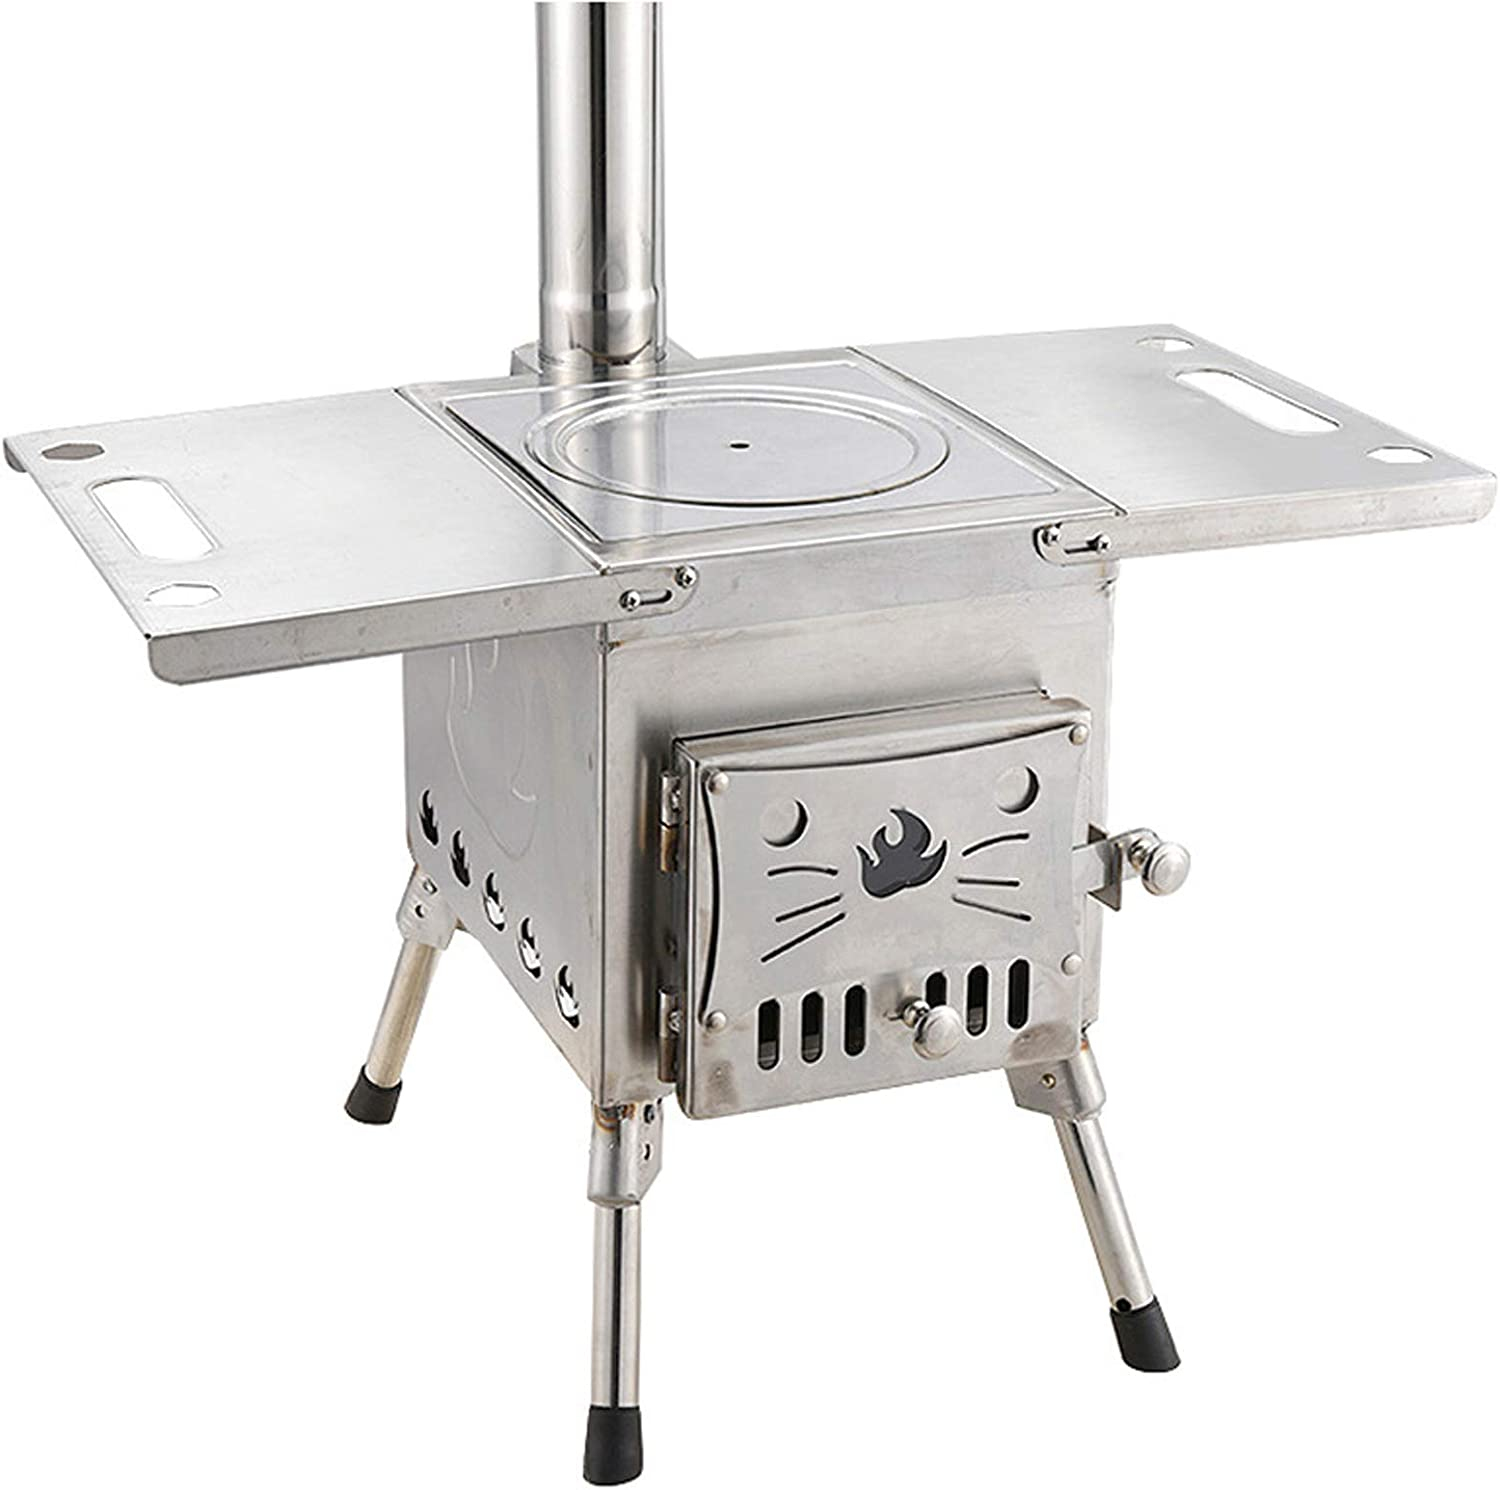 Wood Stove for Cooking and Heating Burning Portable,Indoor&Outdoor Tent/Home Stoves Wood/Pellet Stove Burning - Steel Plate/Stainless Steel